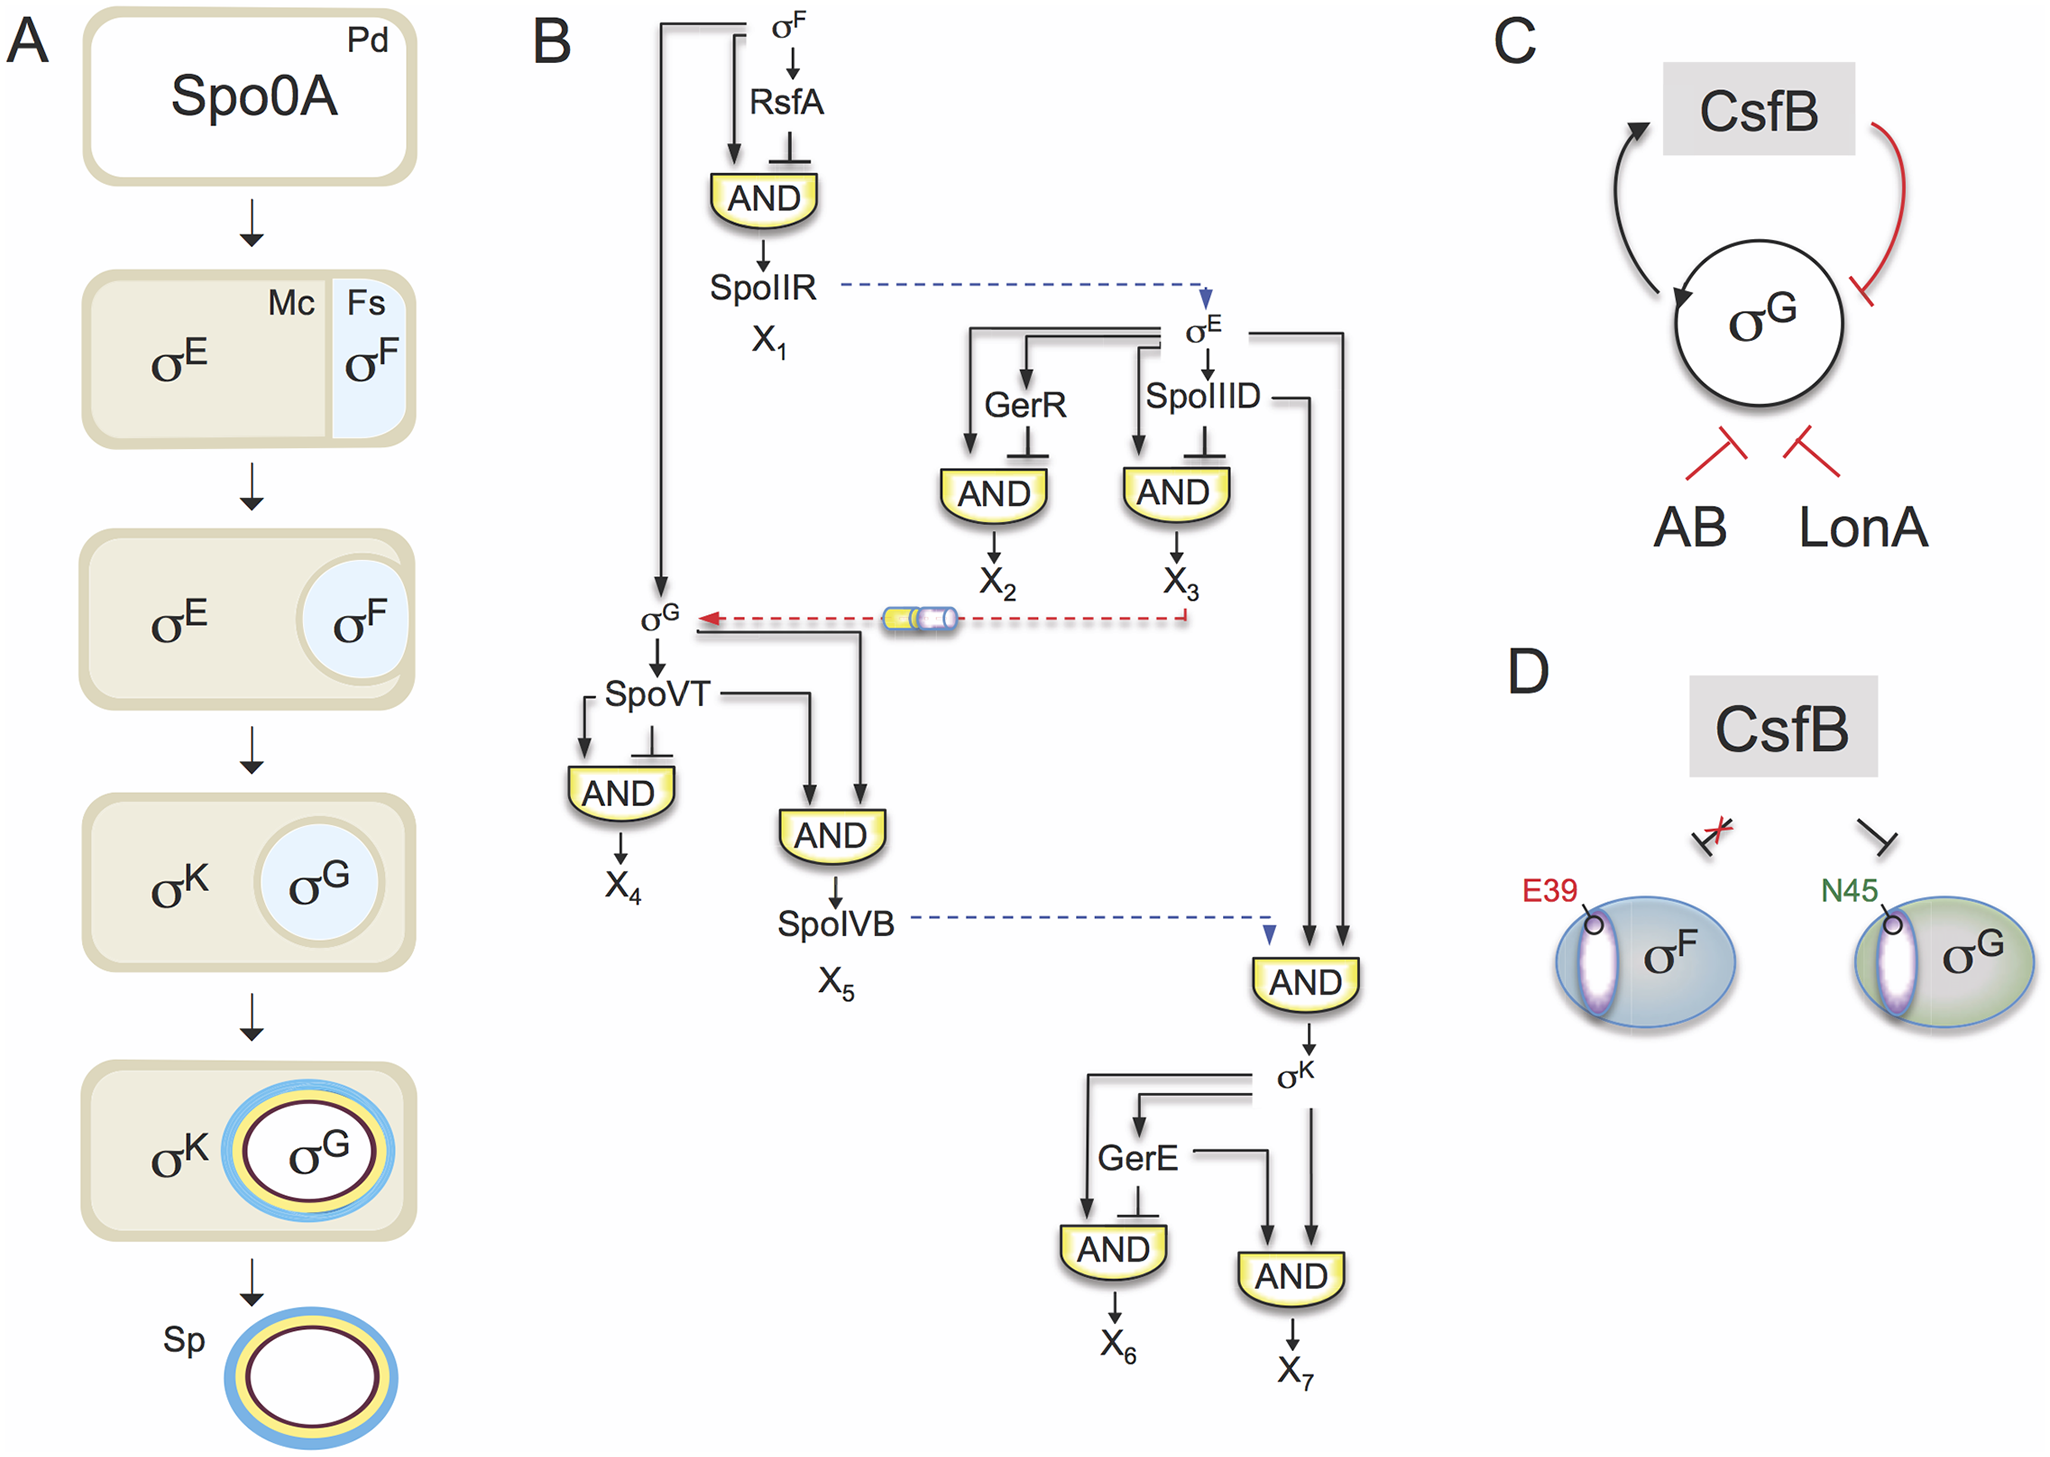 The sporulation network and the action of CsfB on σ<sup>G</sup>.